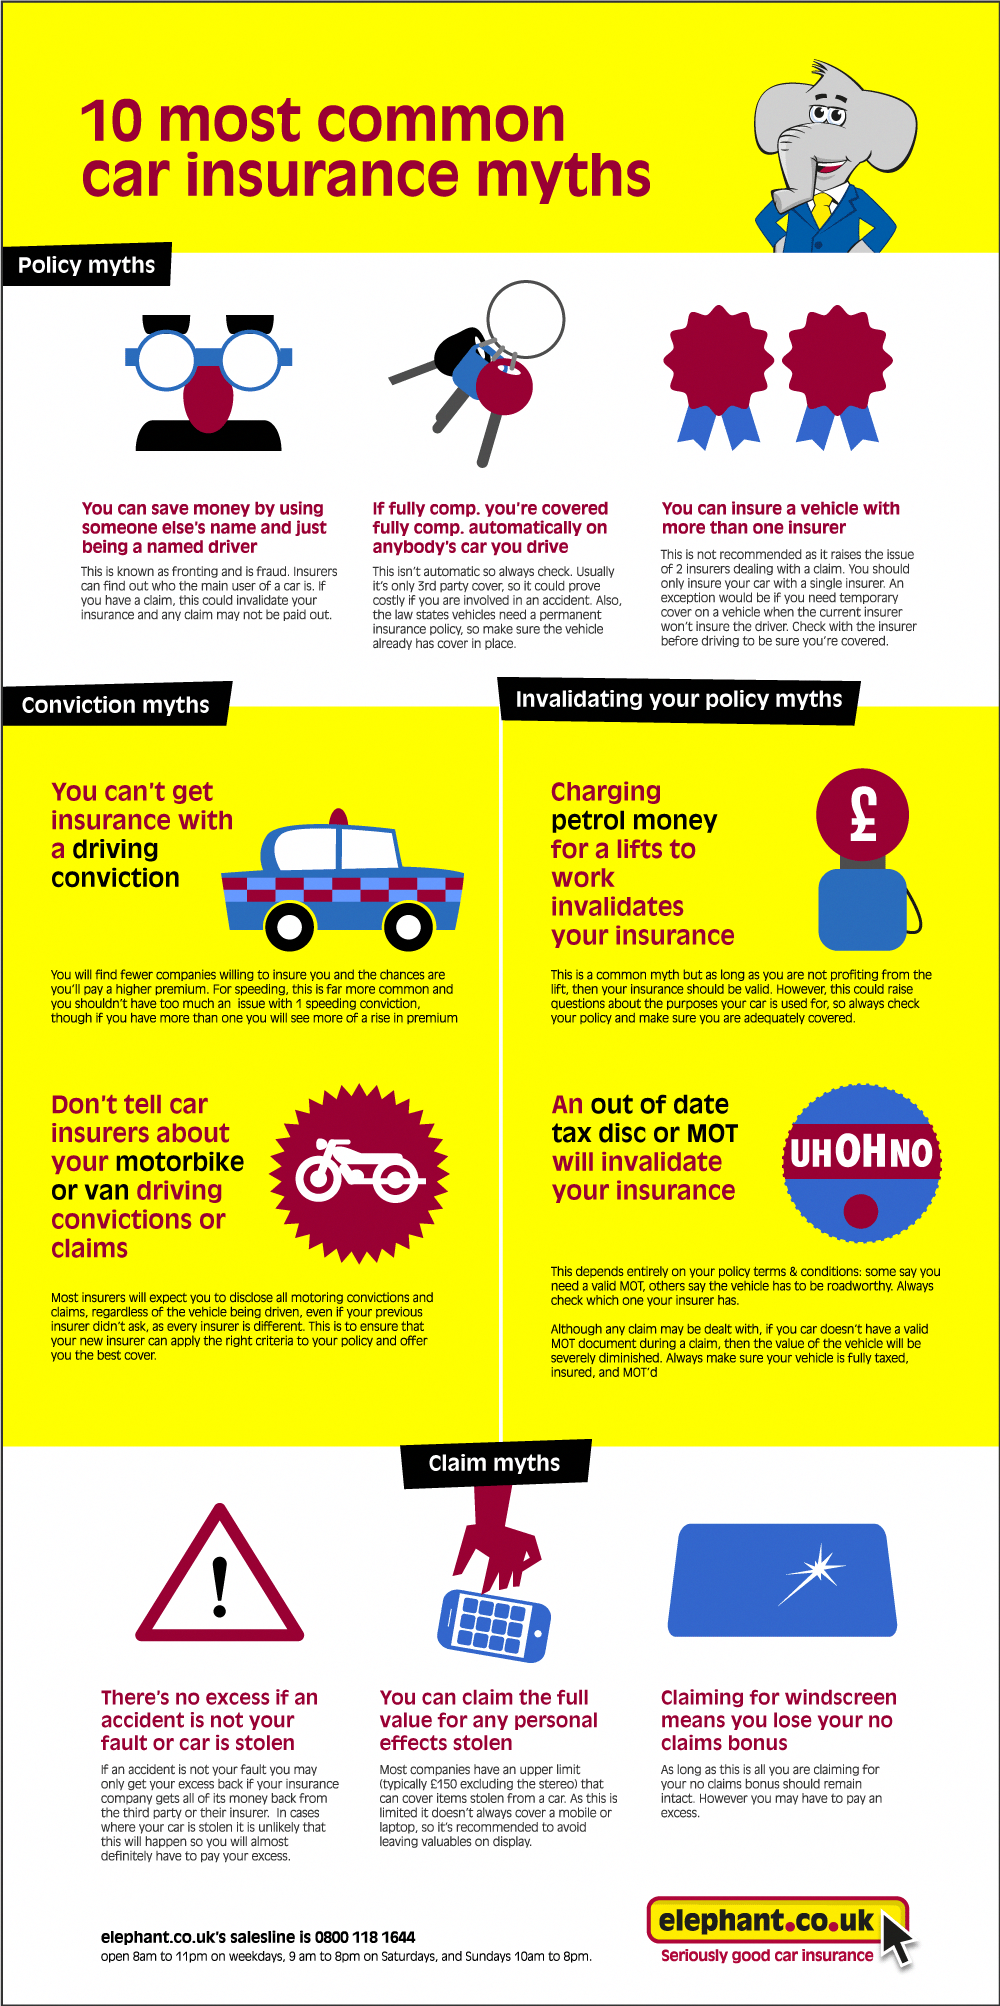 10 most common car insurance myths infographic lifeinsurance